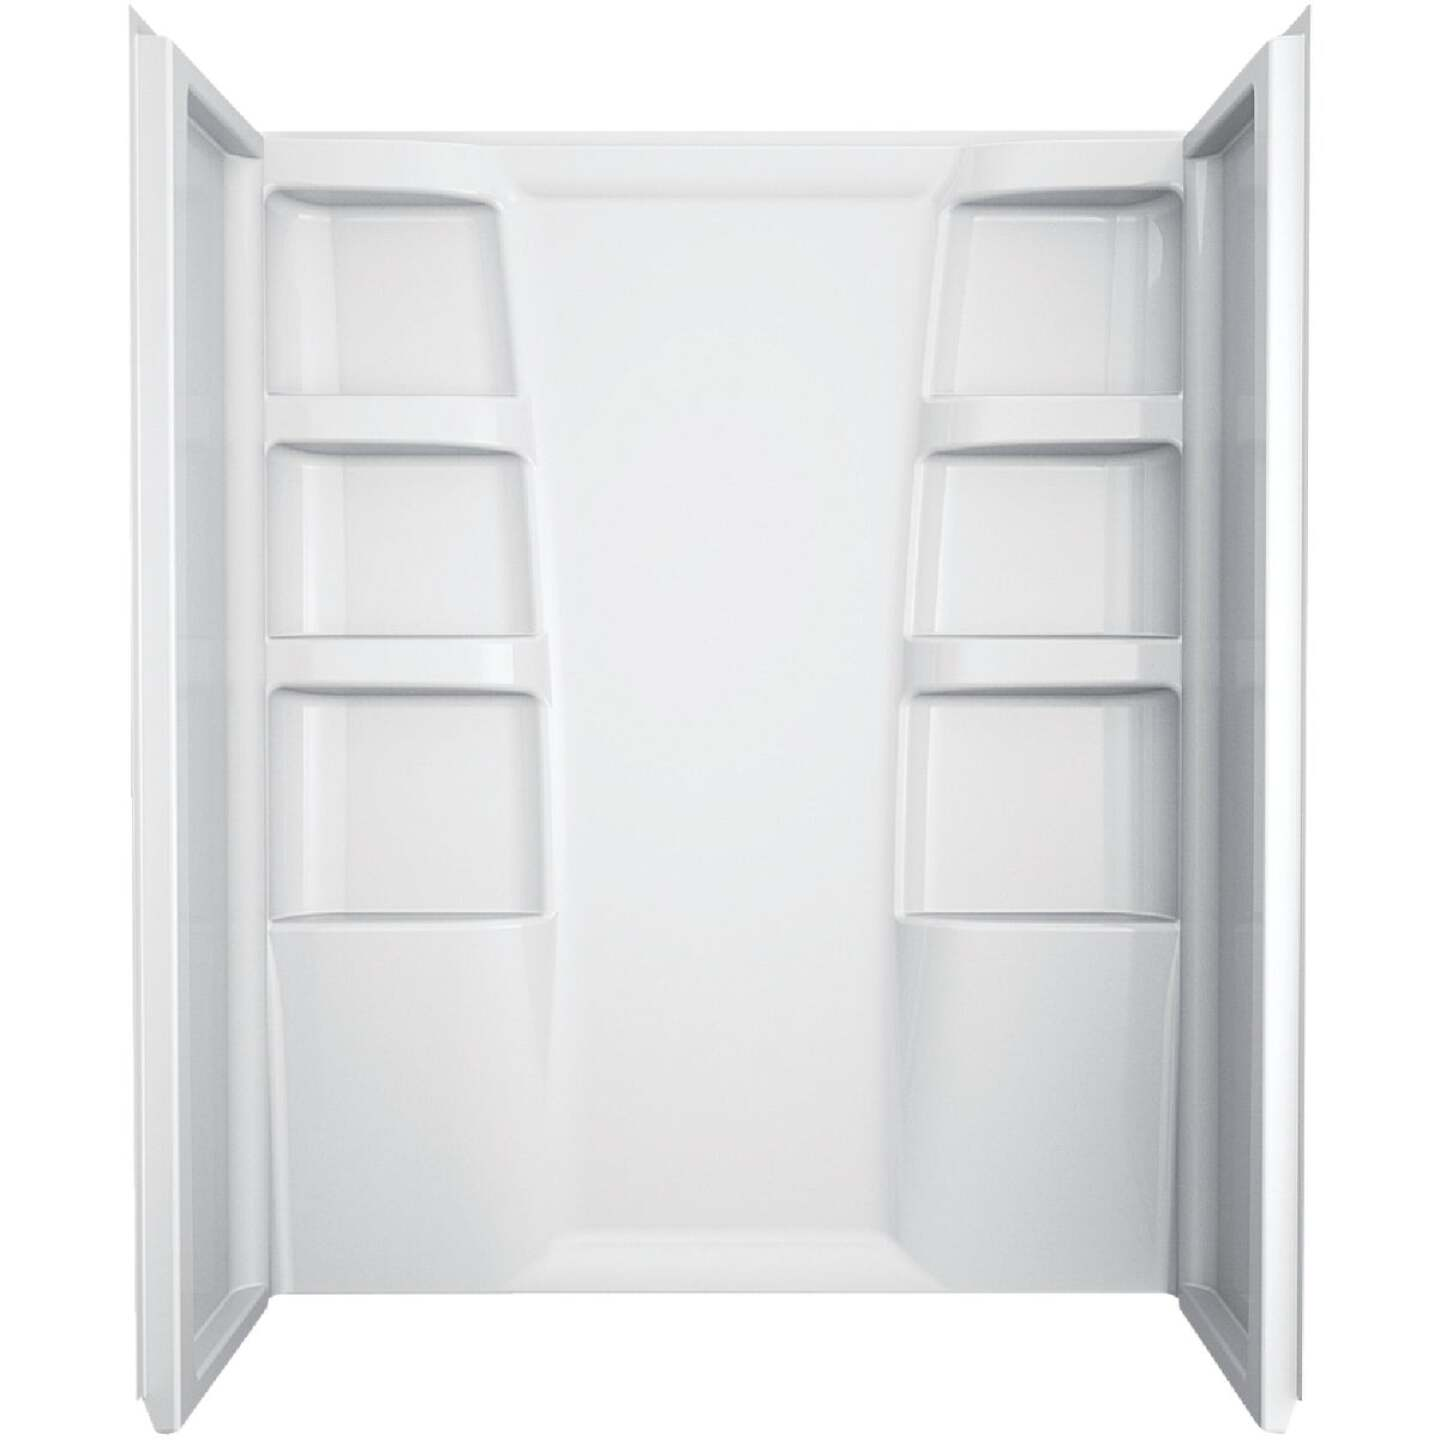 Delta Hycroft 3-Piece 60 In. L x 30 In. D Shower Wall Set in White Image 1